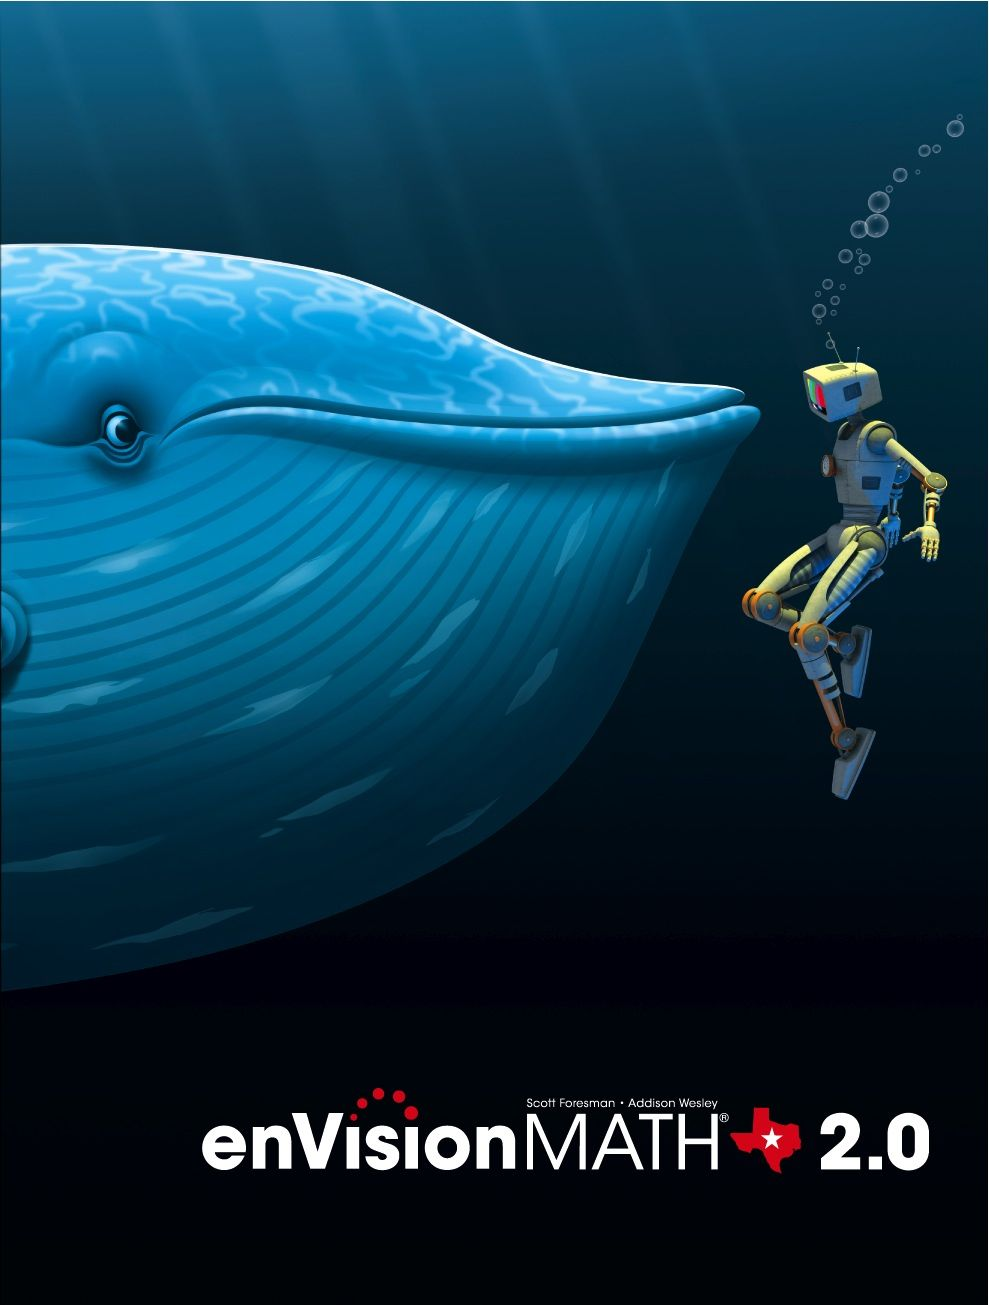 medium resolution of enVisionMATH - Student Edition - Grade 5 - Pearson Texas   Envision math